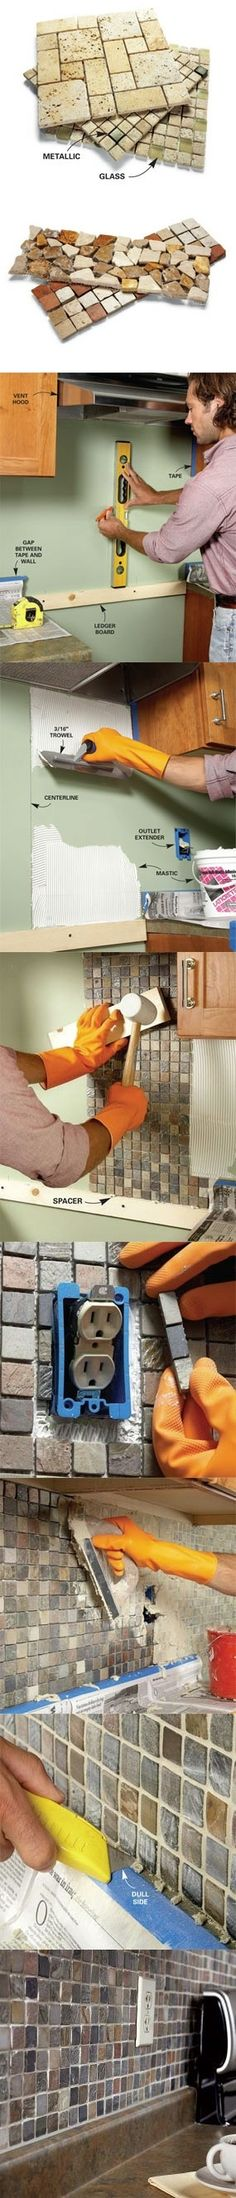 DIY Backsplash Pictures, Photos, and Images for Facebook, Tumblr, Pinterest, and Twitter